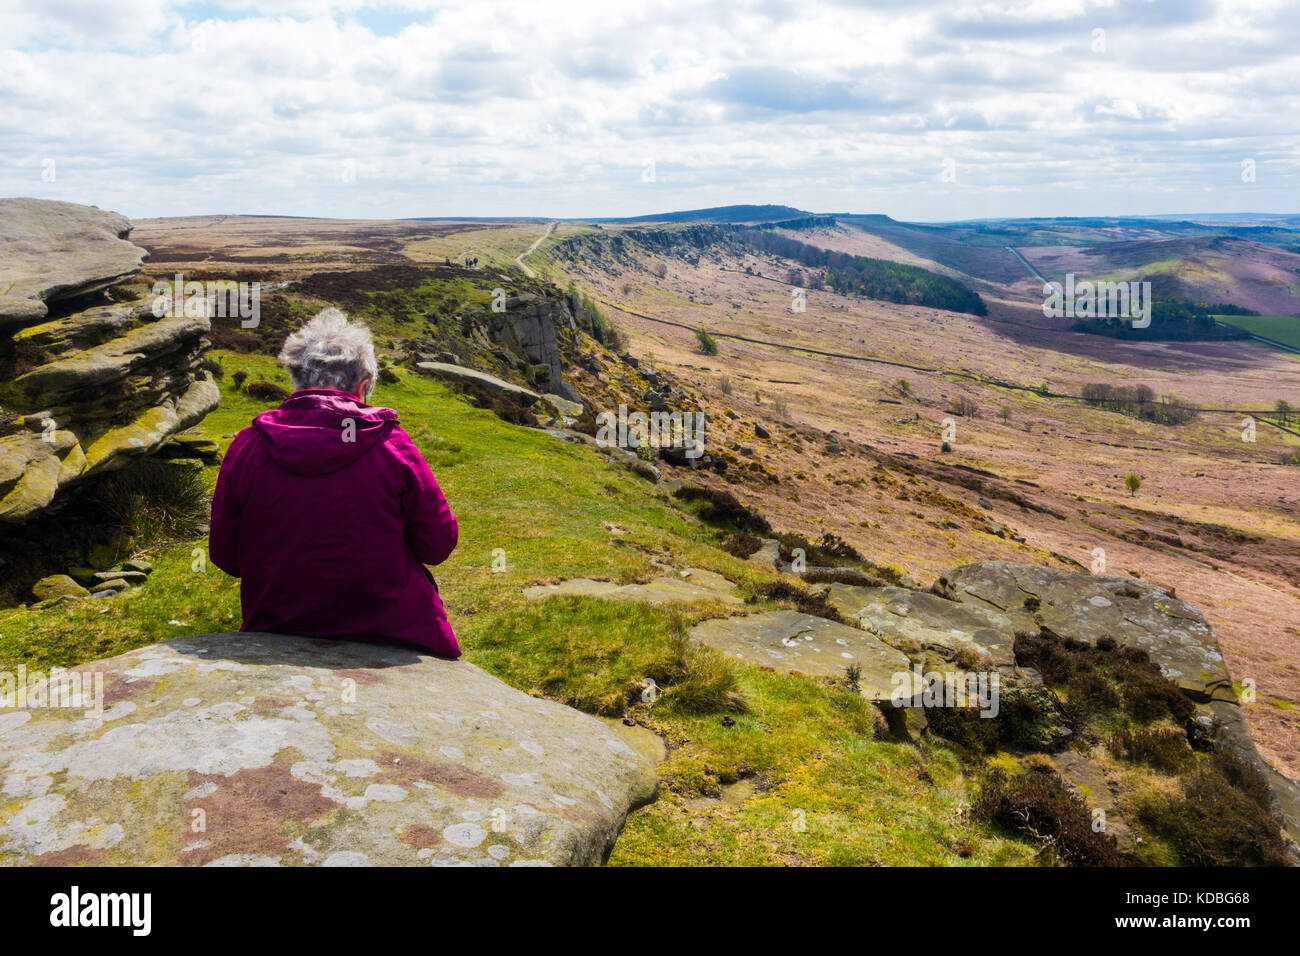 Stanage Edge, Derbyshire, Peak District, England. Gritstone escarpment popular with climbers and walkers - Stock Image